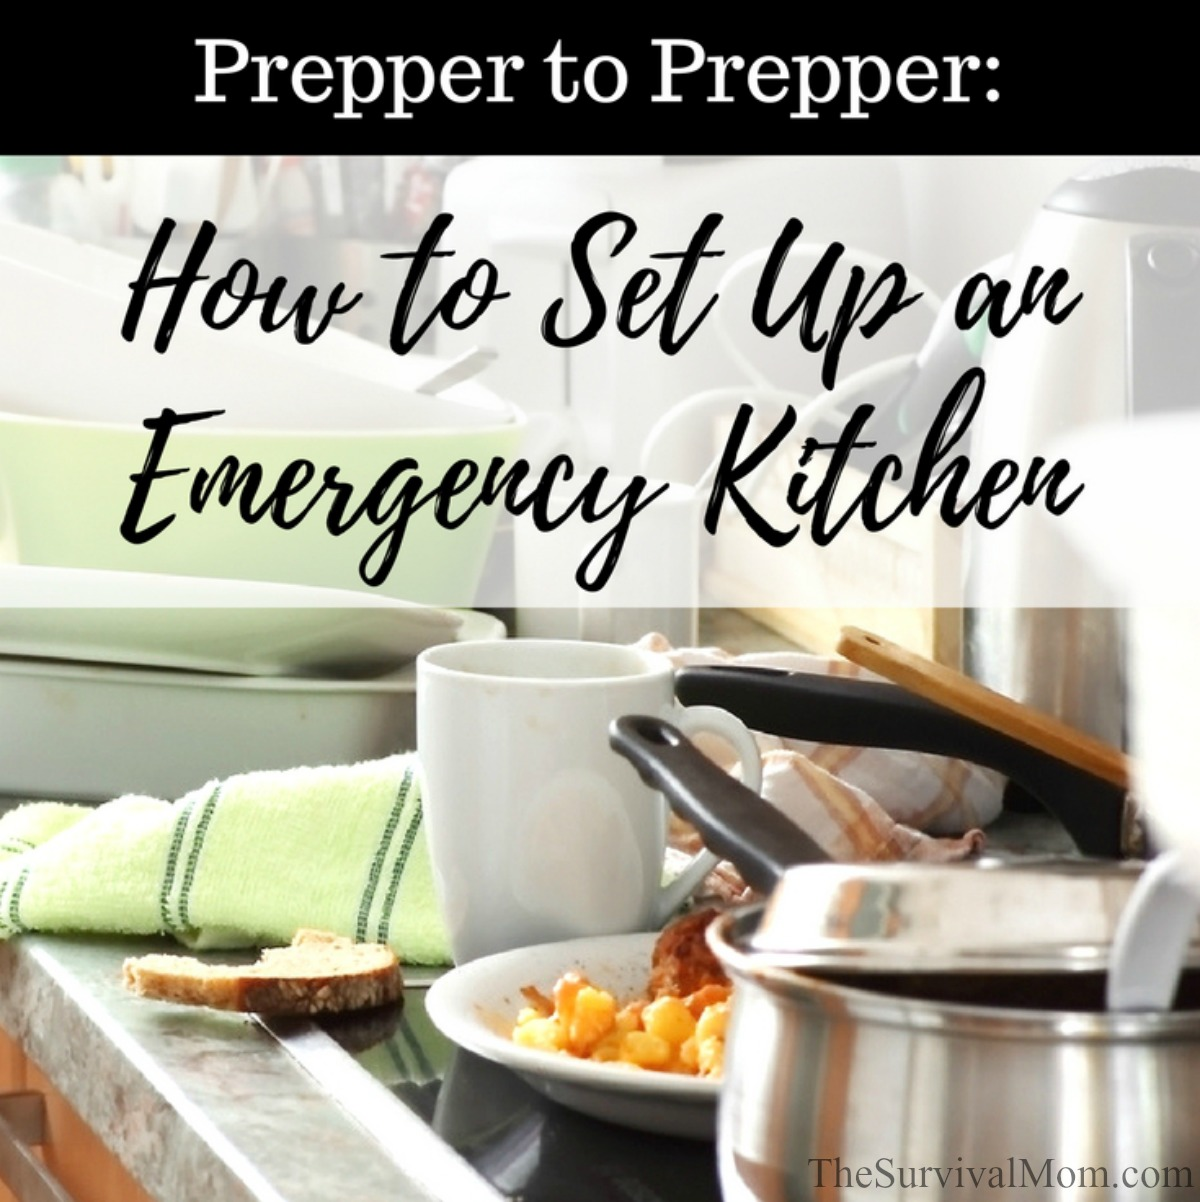 Prepper to Prepper How to Set Up an Emergency Kitchen via The Survival Mom